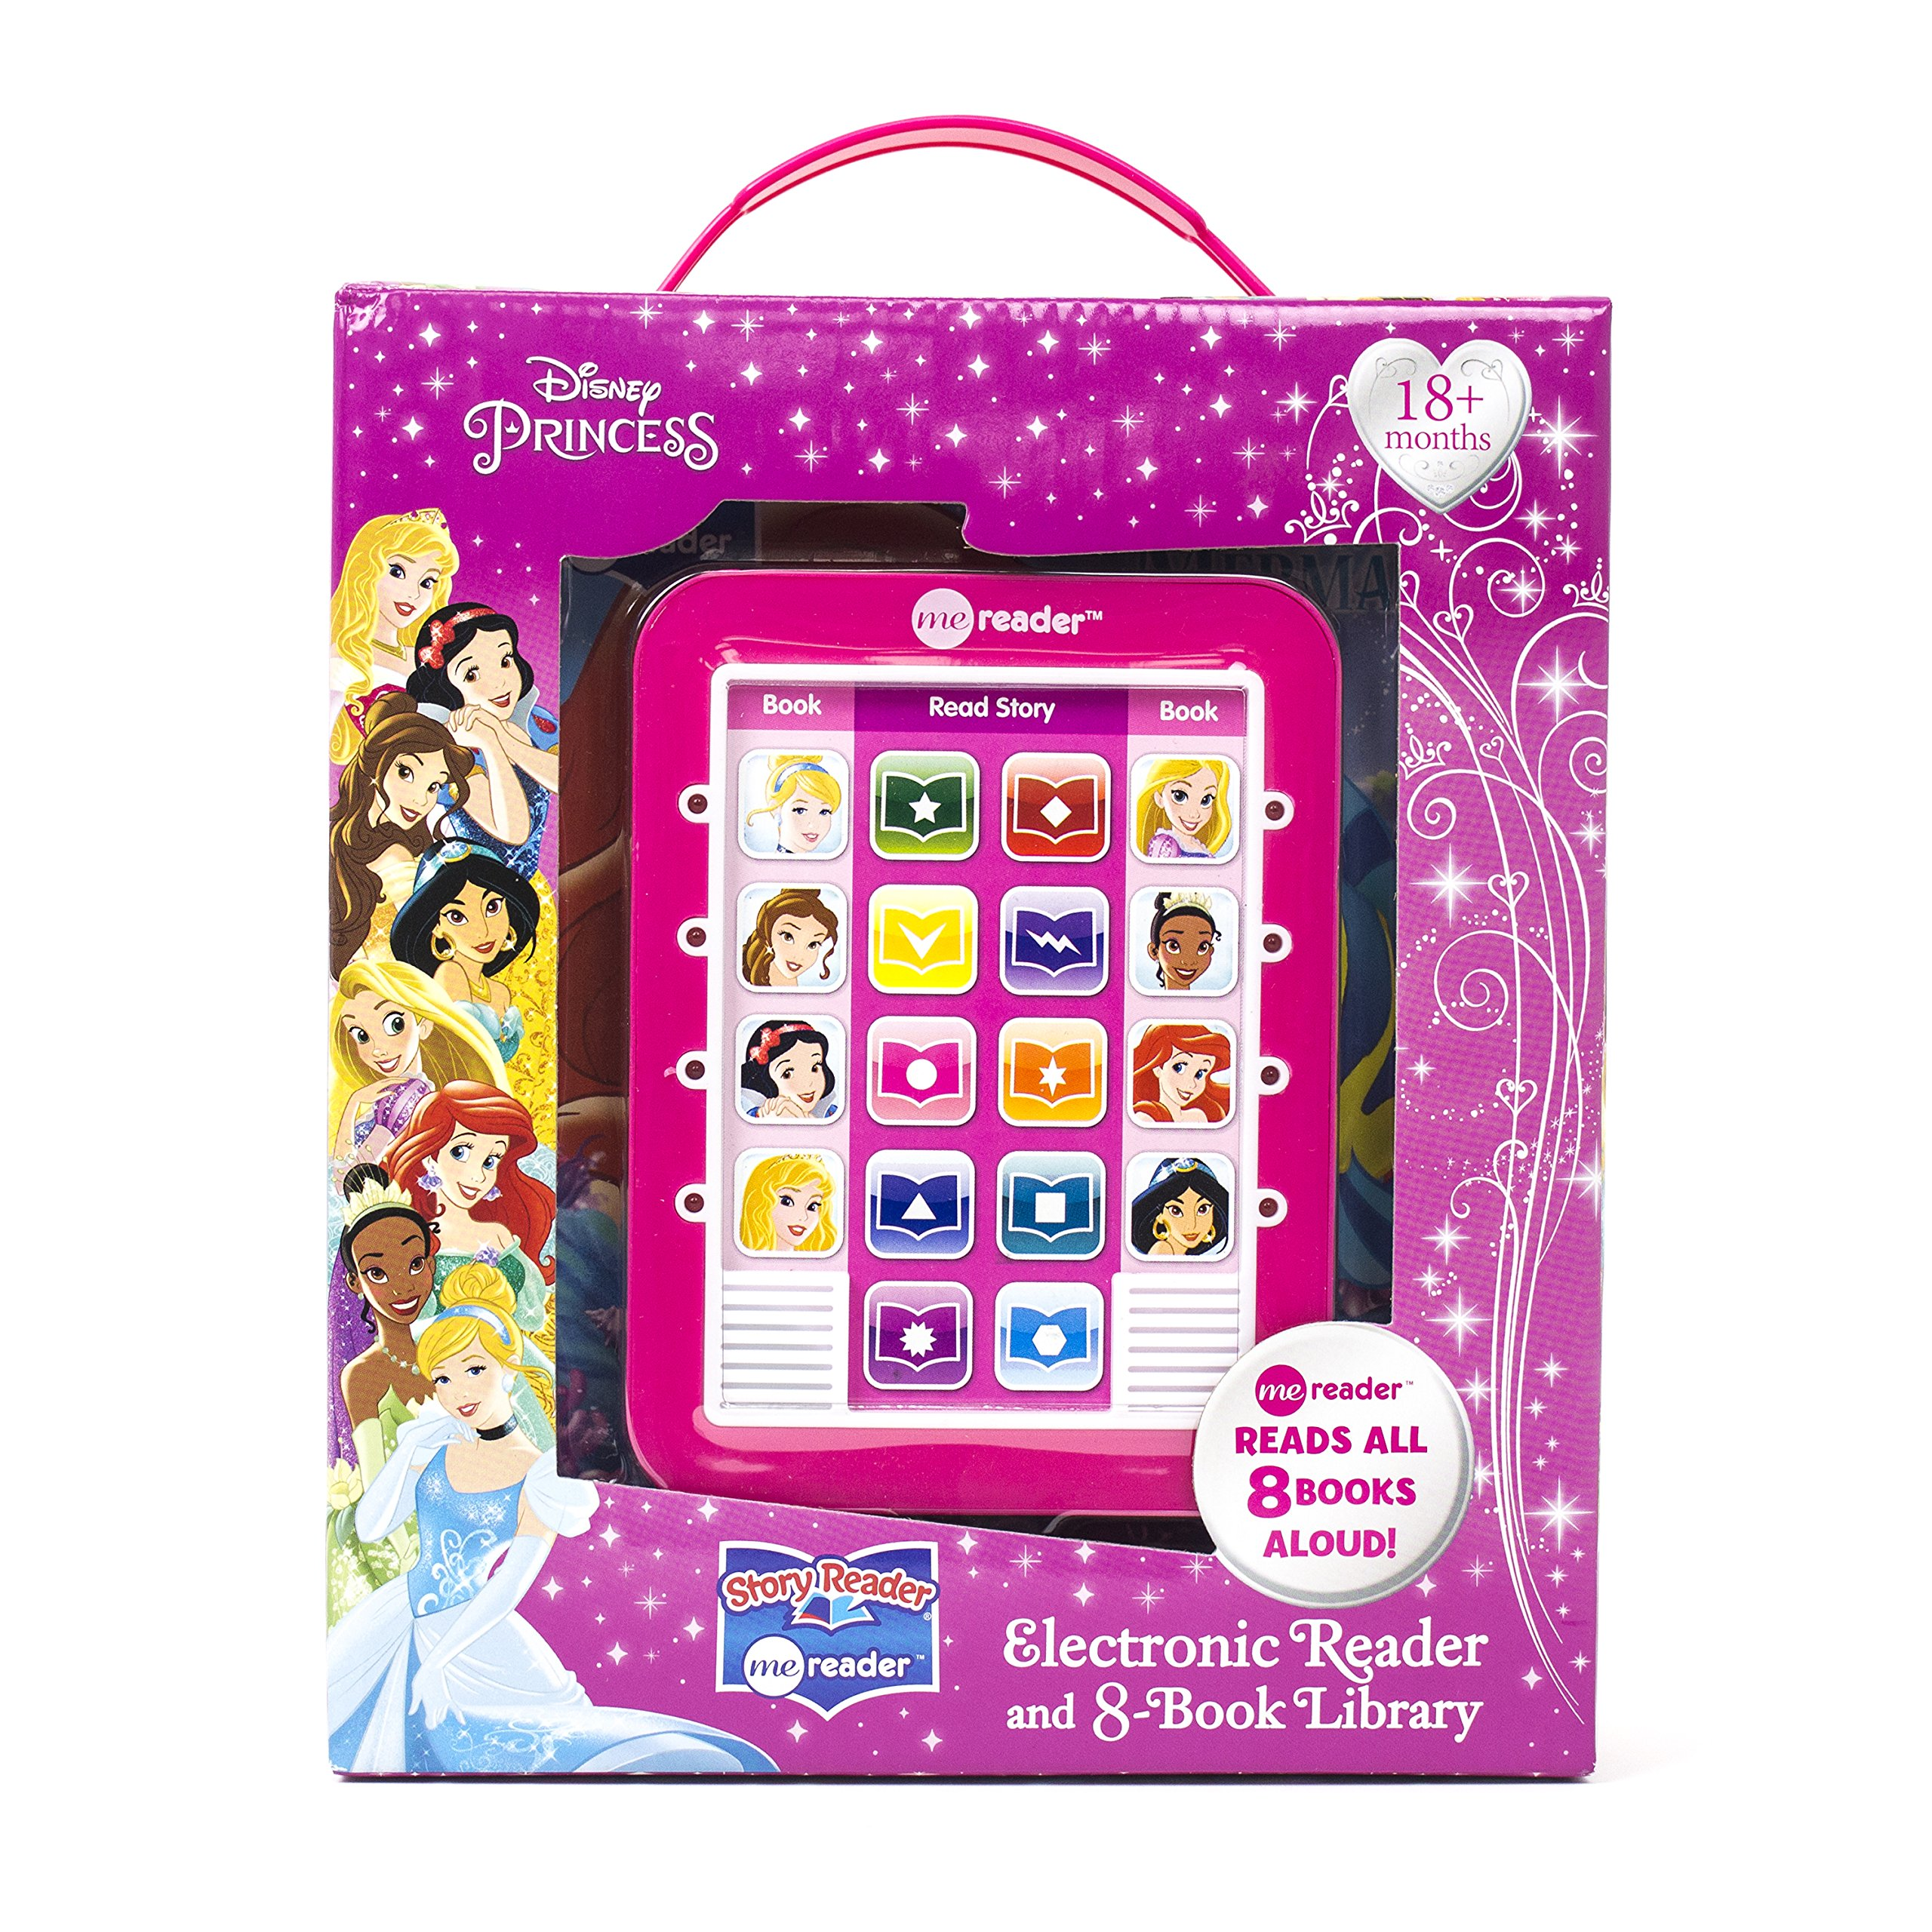 Disney Princess - Me reader Electronic Reader and 8-Book Library - PI Kids